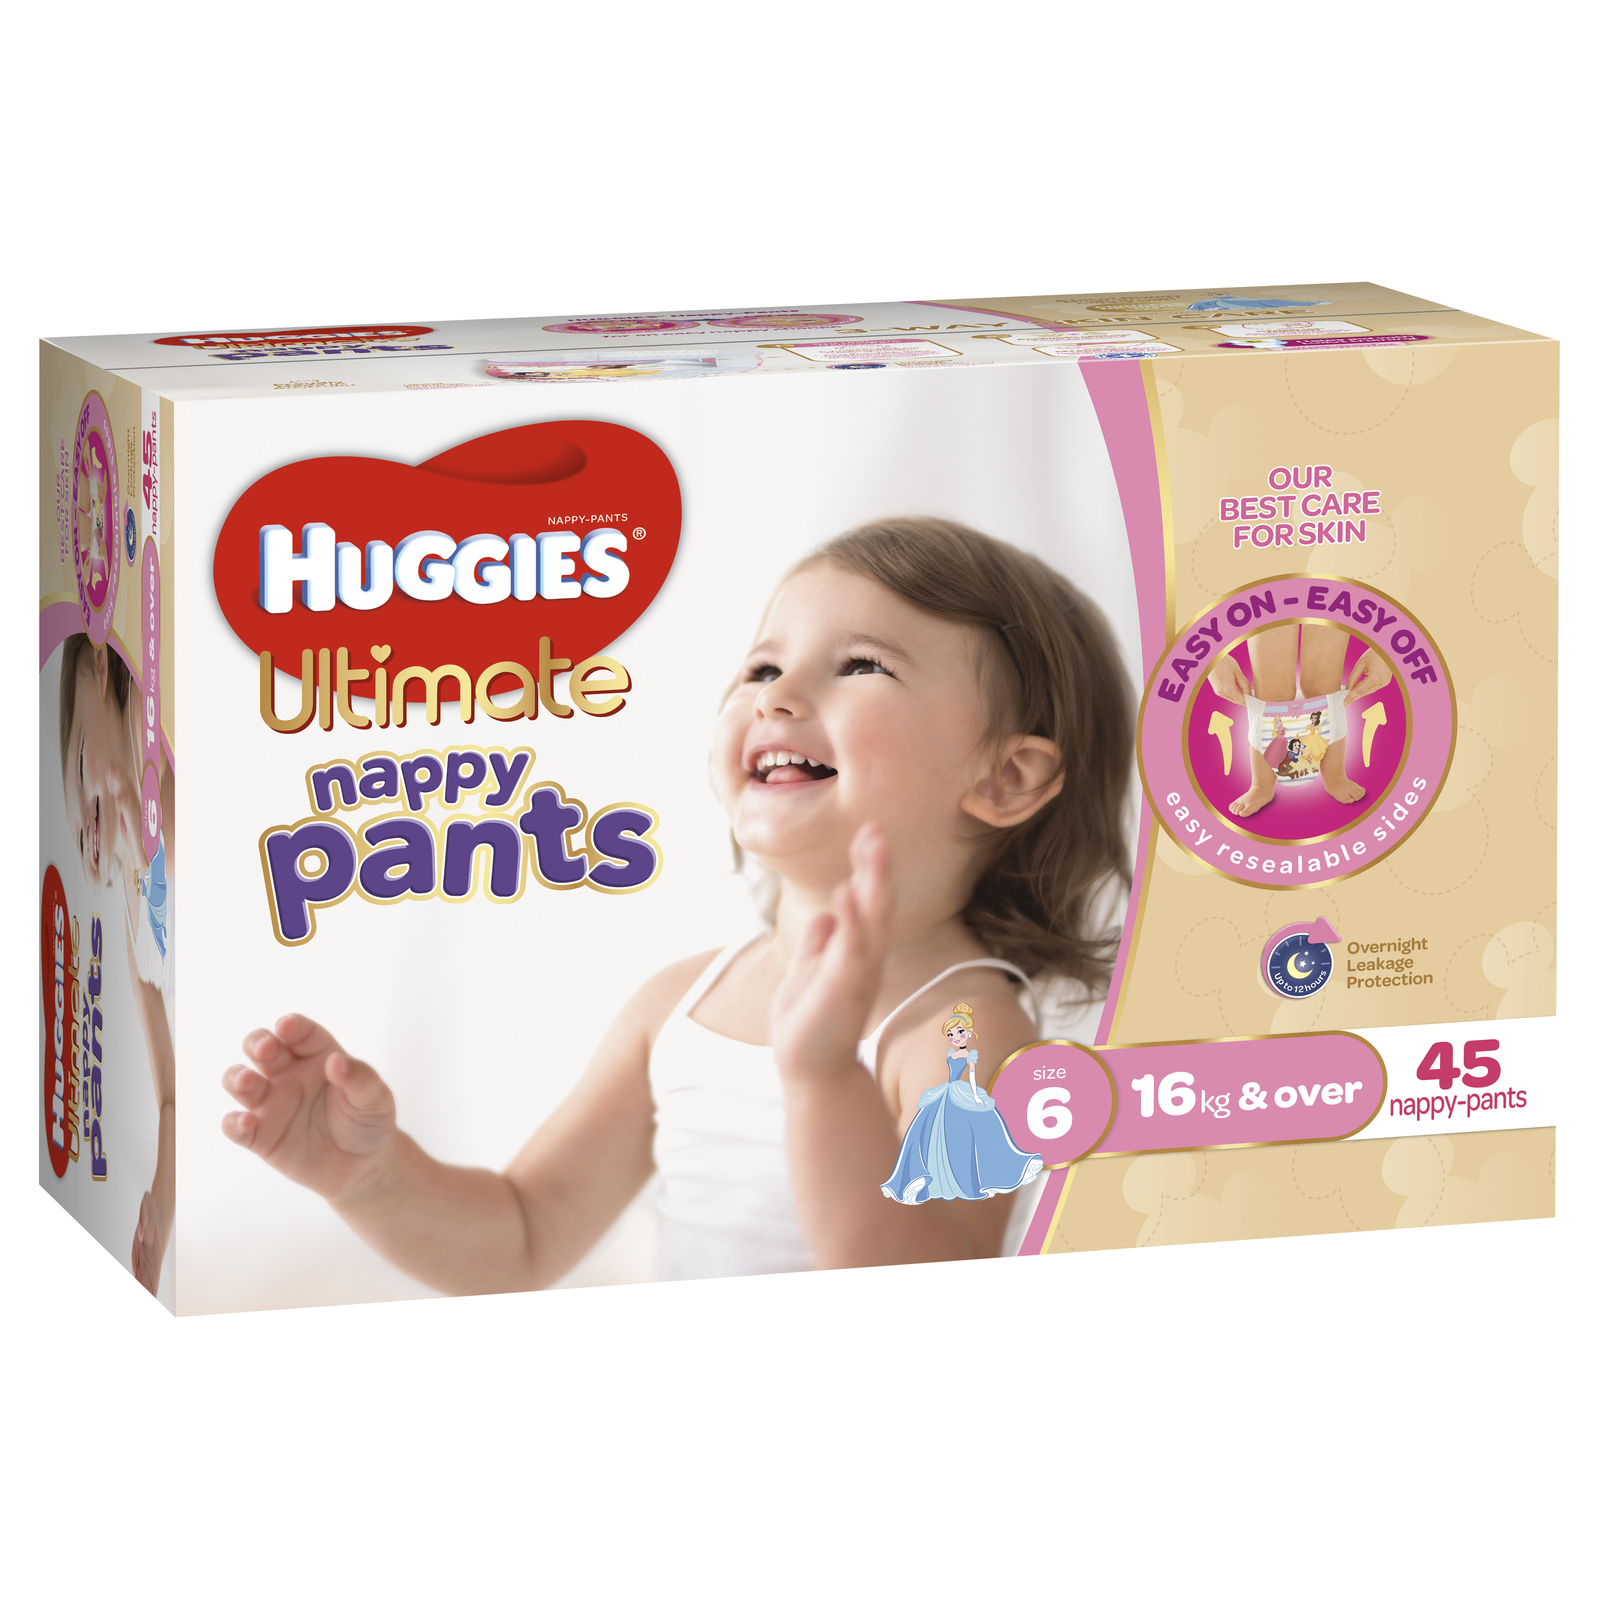 Huggies Ultimate Nappy Pants: Jumbo Pack - Junior Girl 16kg+ (45) image